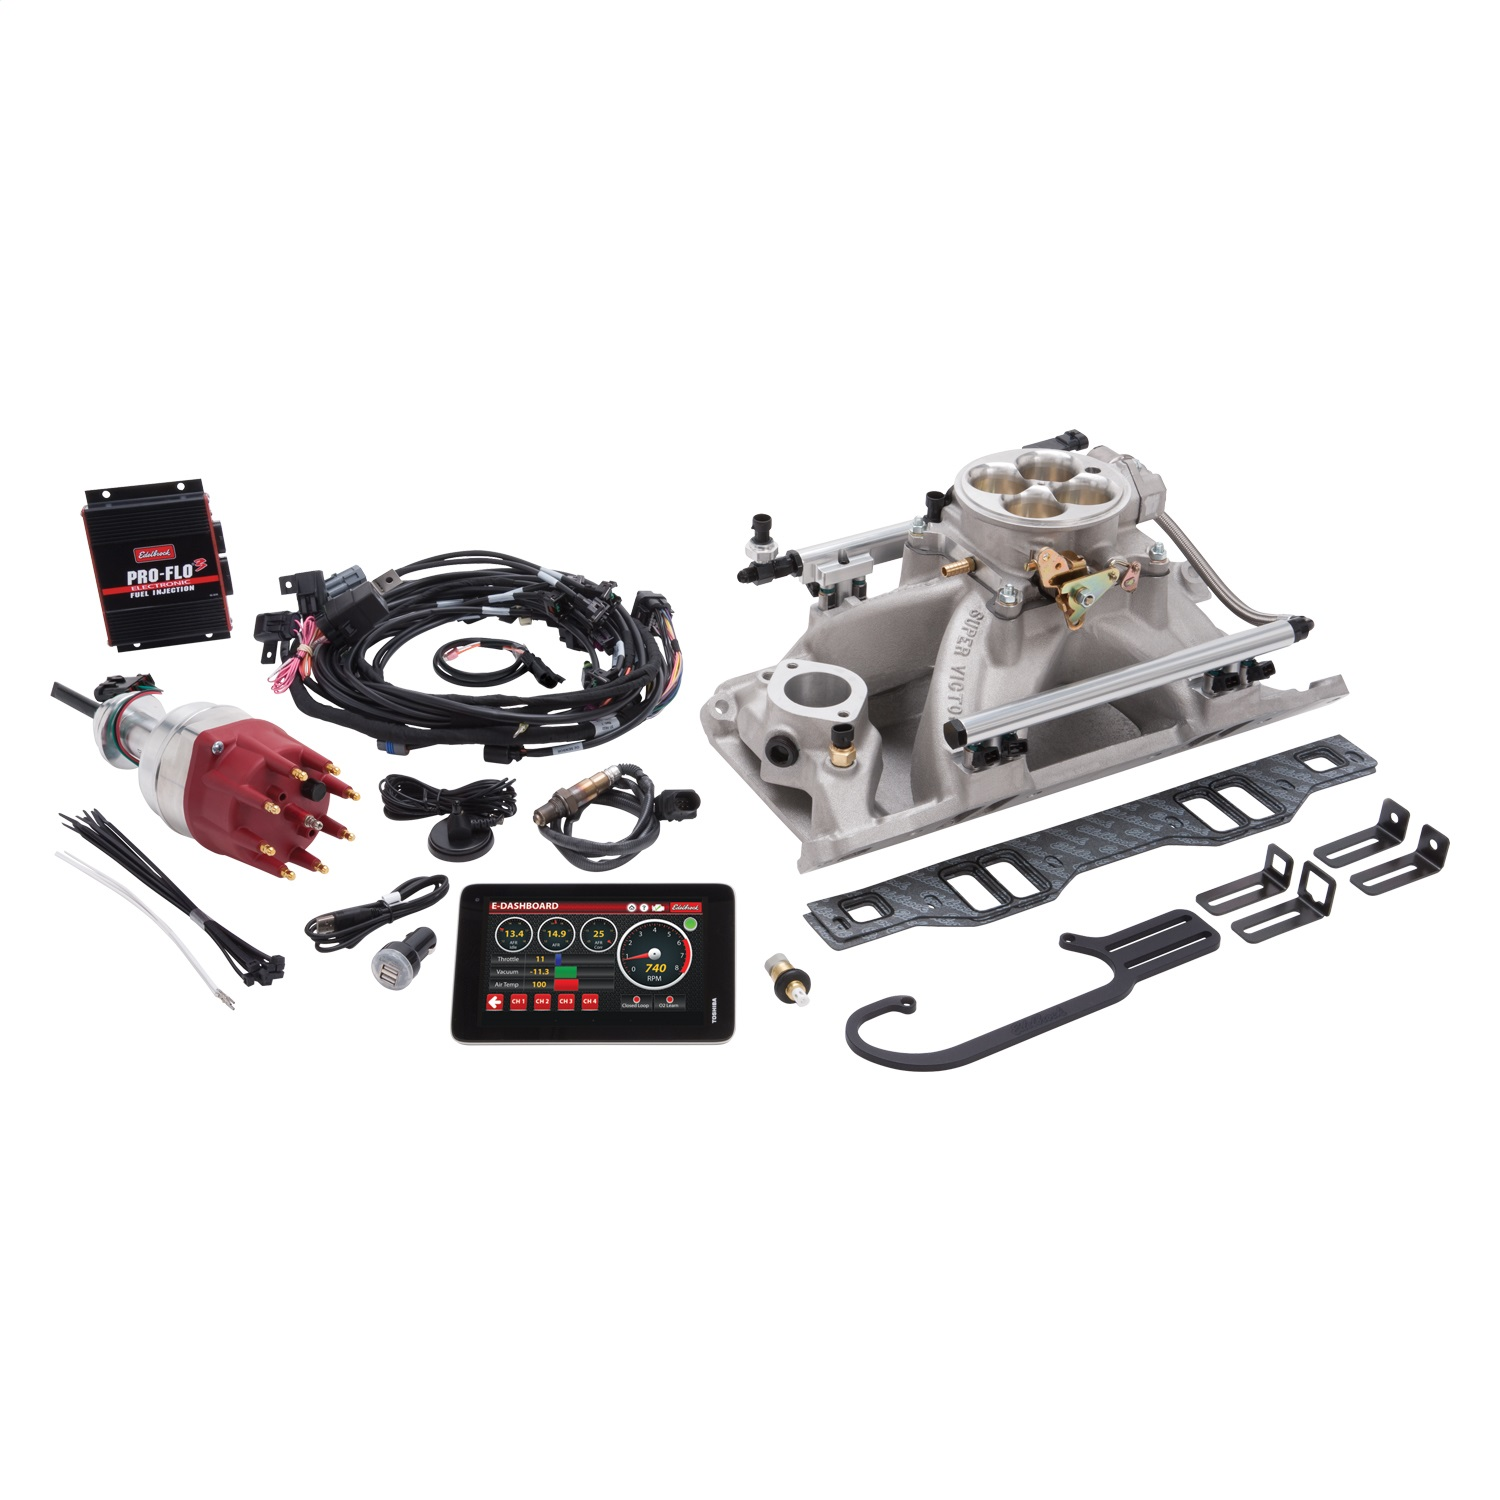 Edelbrock Pro Flo 3 Electronic Fuel Injection System